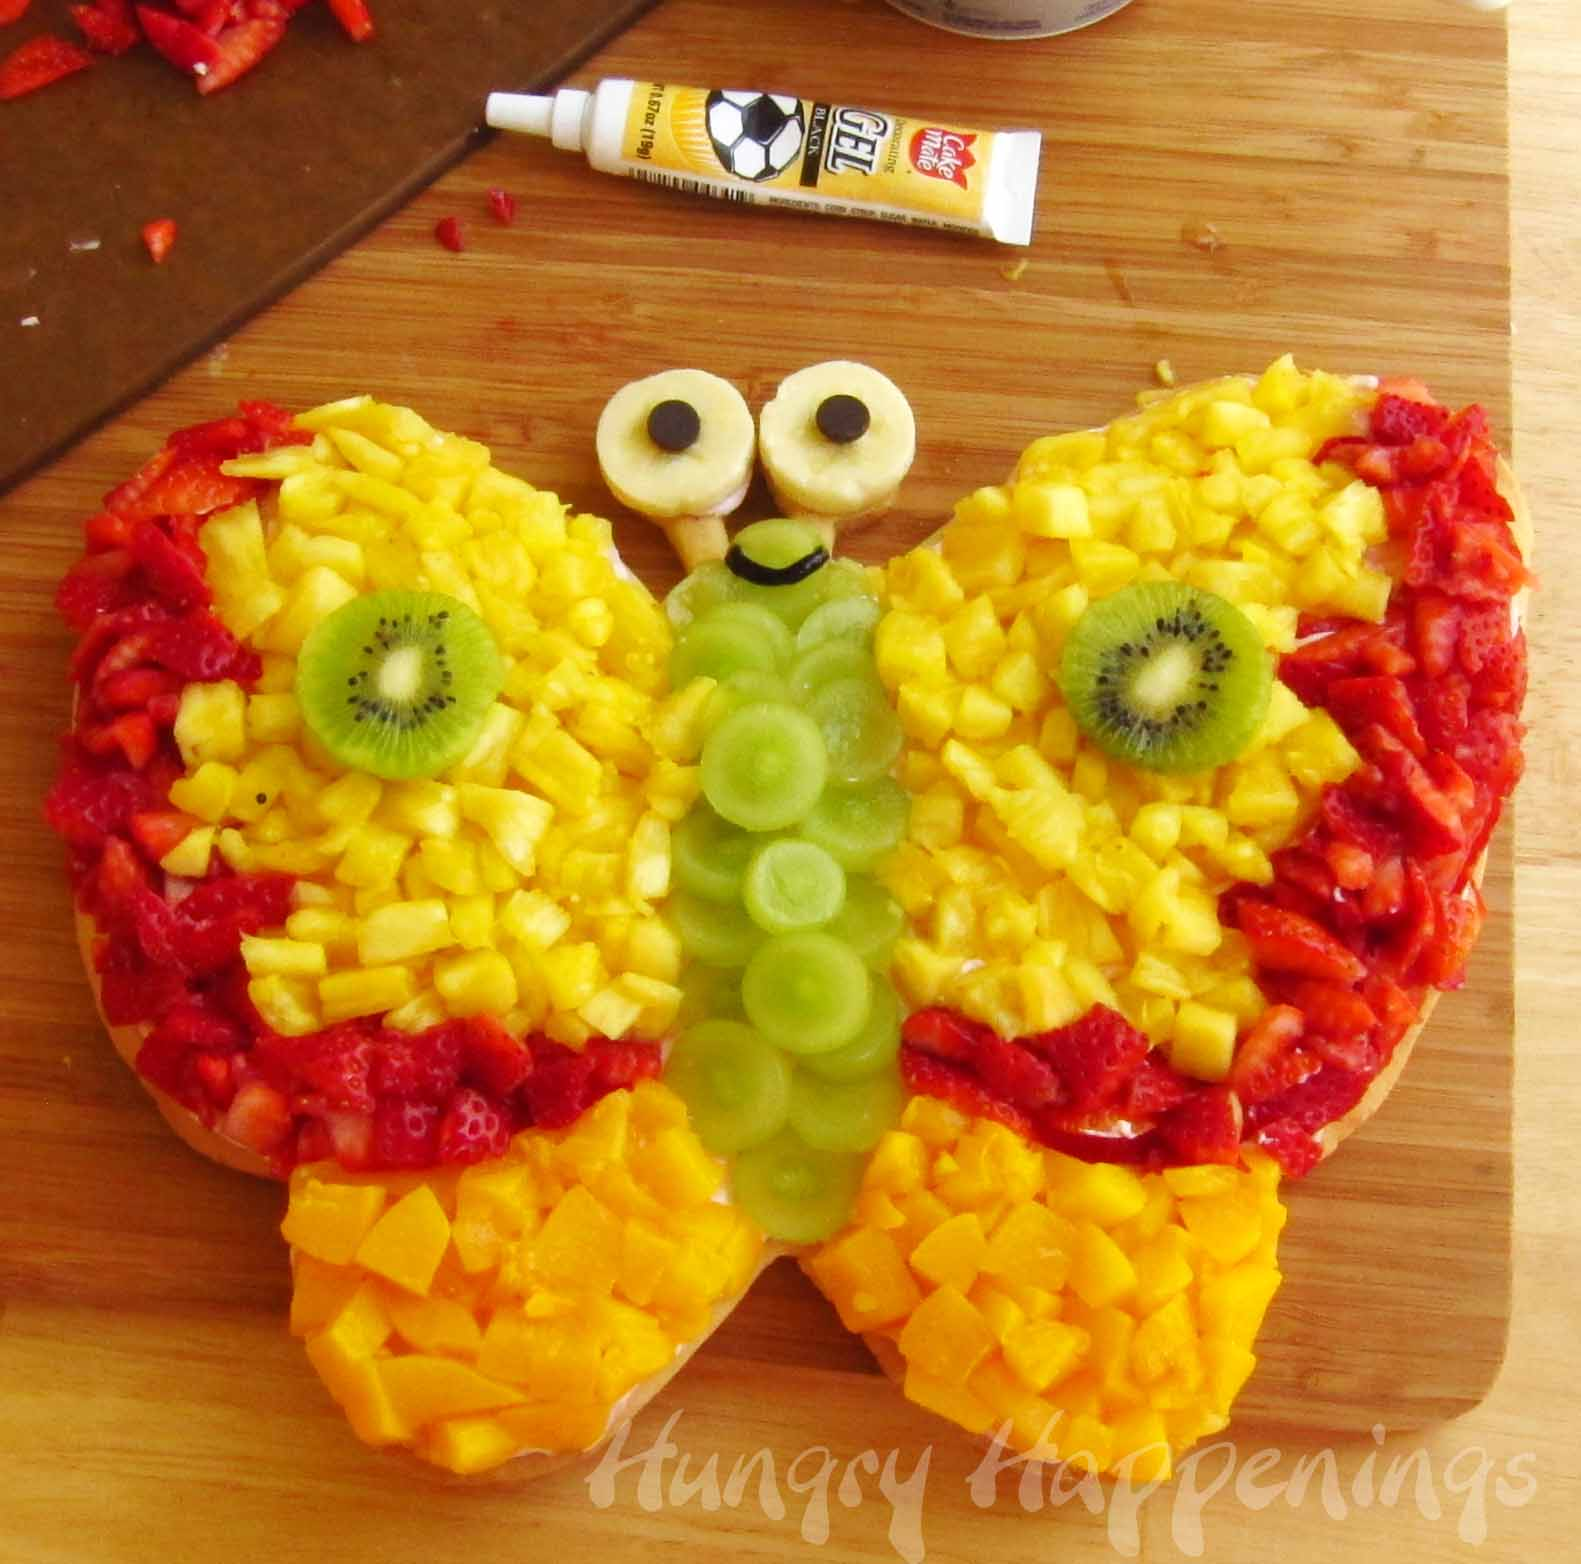 Fruit Shaped Cake Decoration : Birthday ideas for Lina on Pinterest Hello Kitty ...